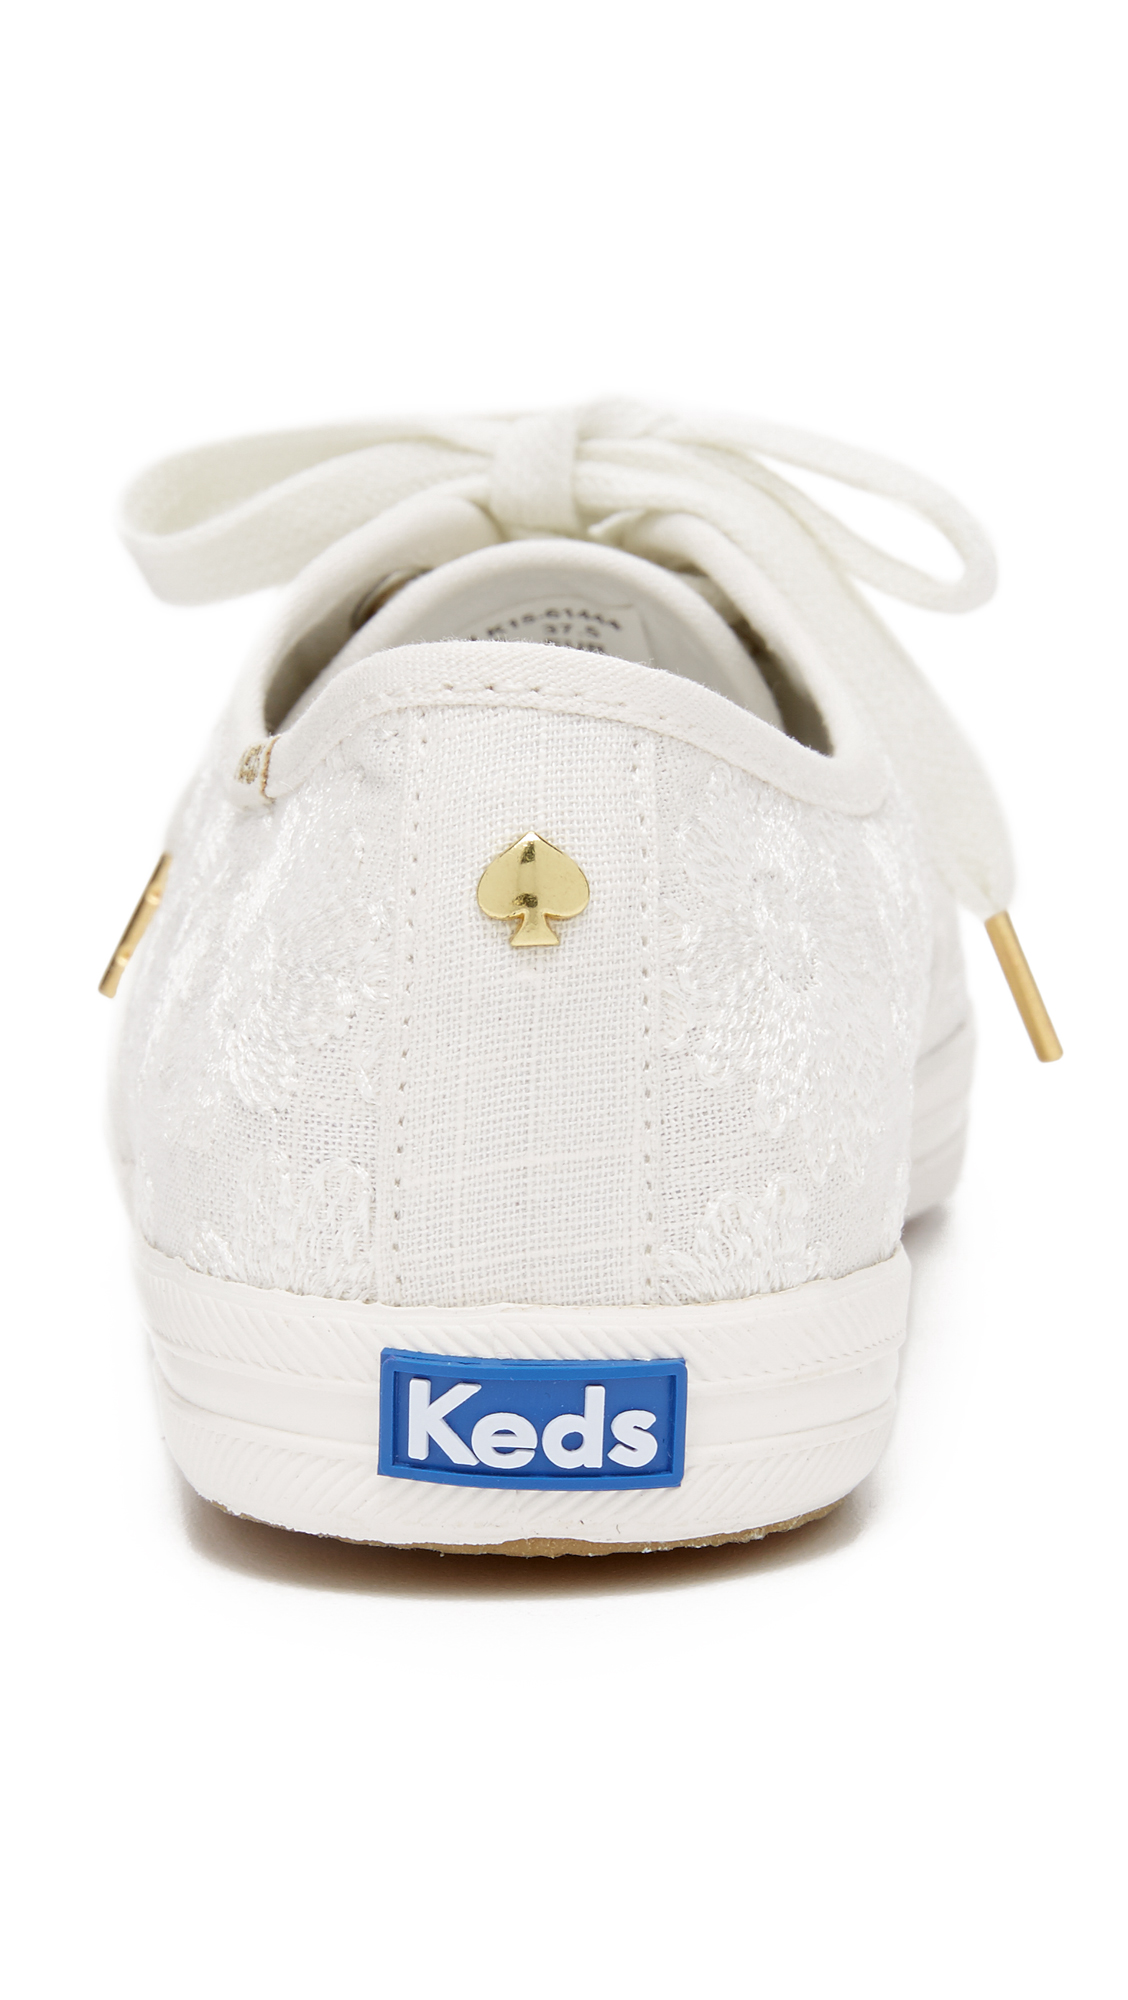 88f6b8fcf288 Kate Spade New York Keds for Kate Spade Kick Embroidered Sneakers ...